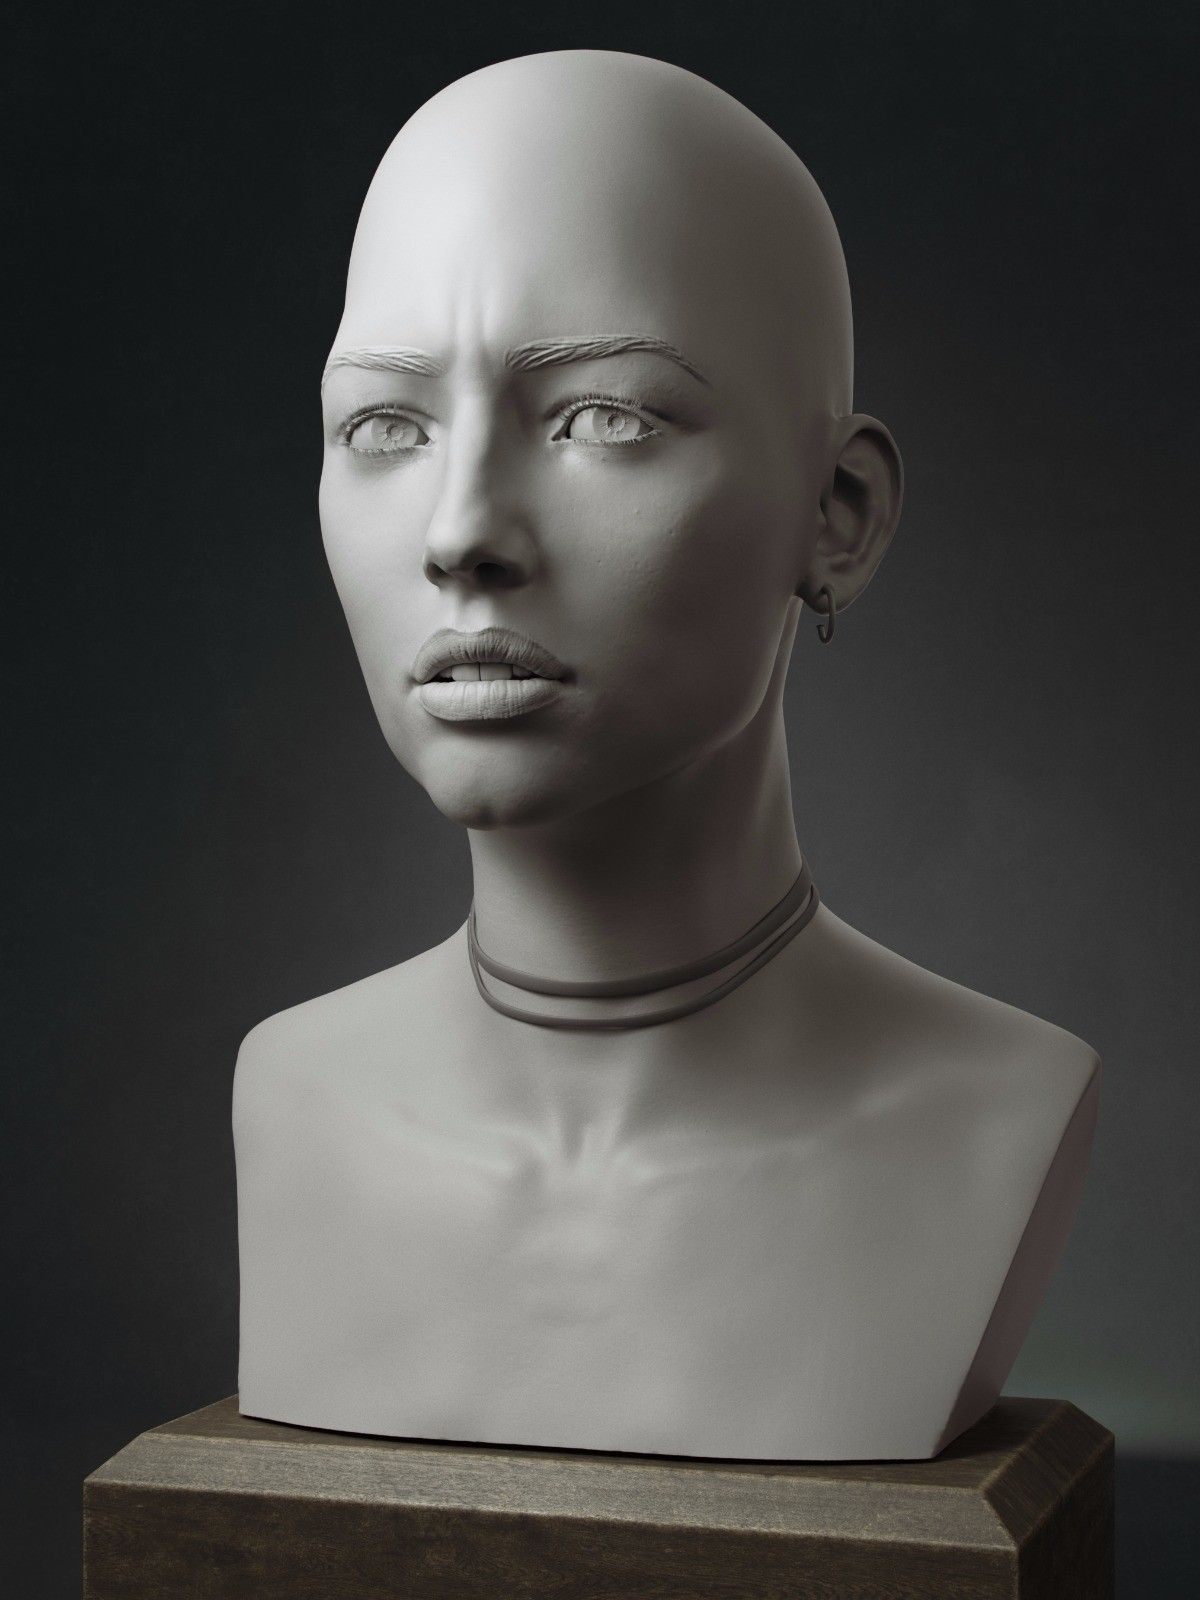 ArtStation - Female face, Magno Coutinho | Portrait Sculptures ...